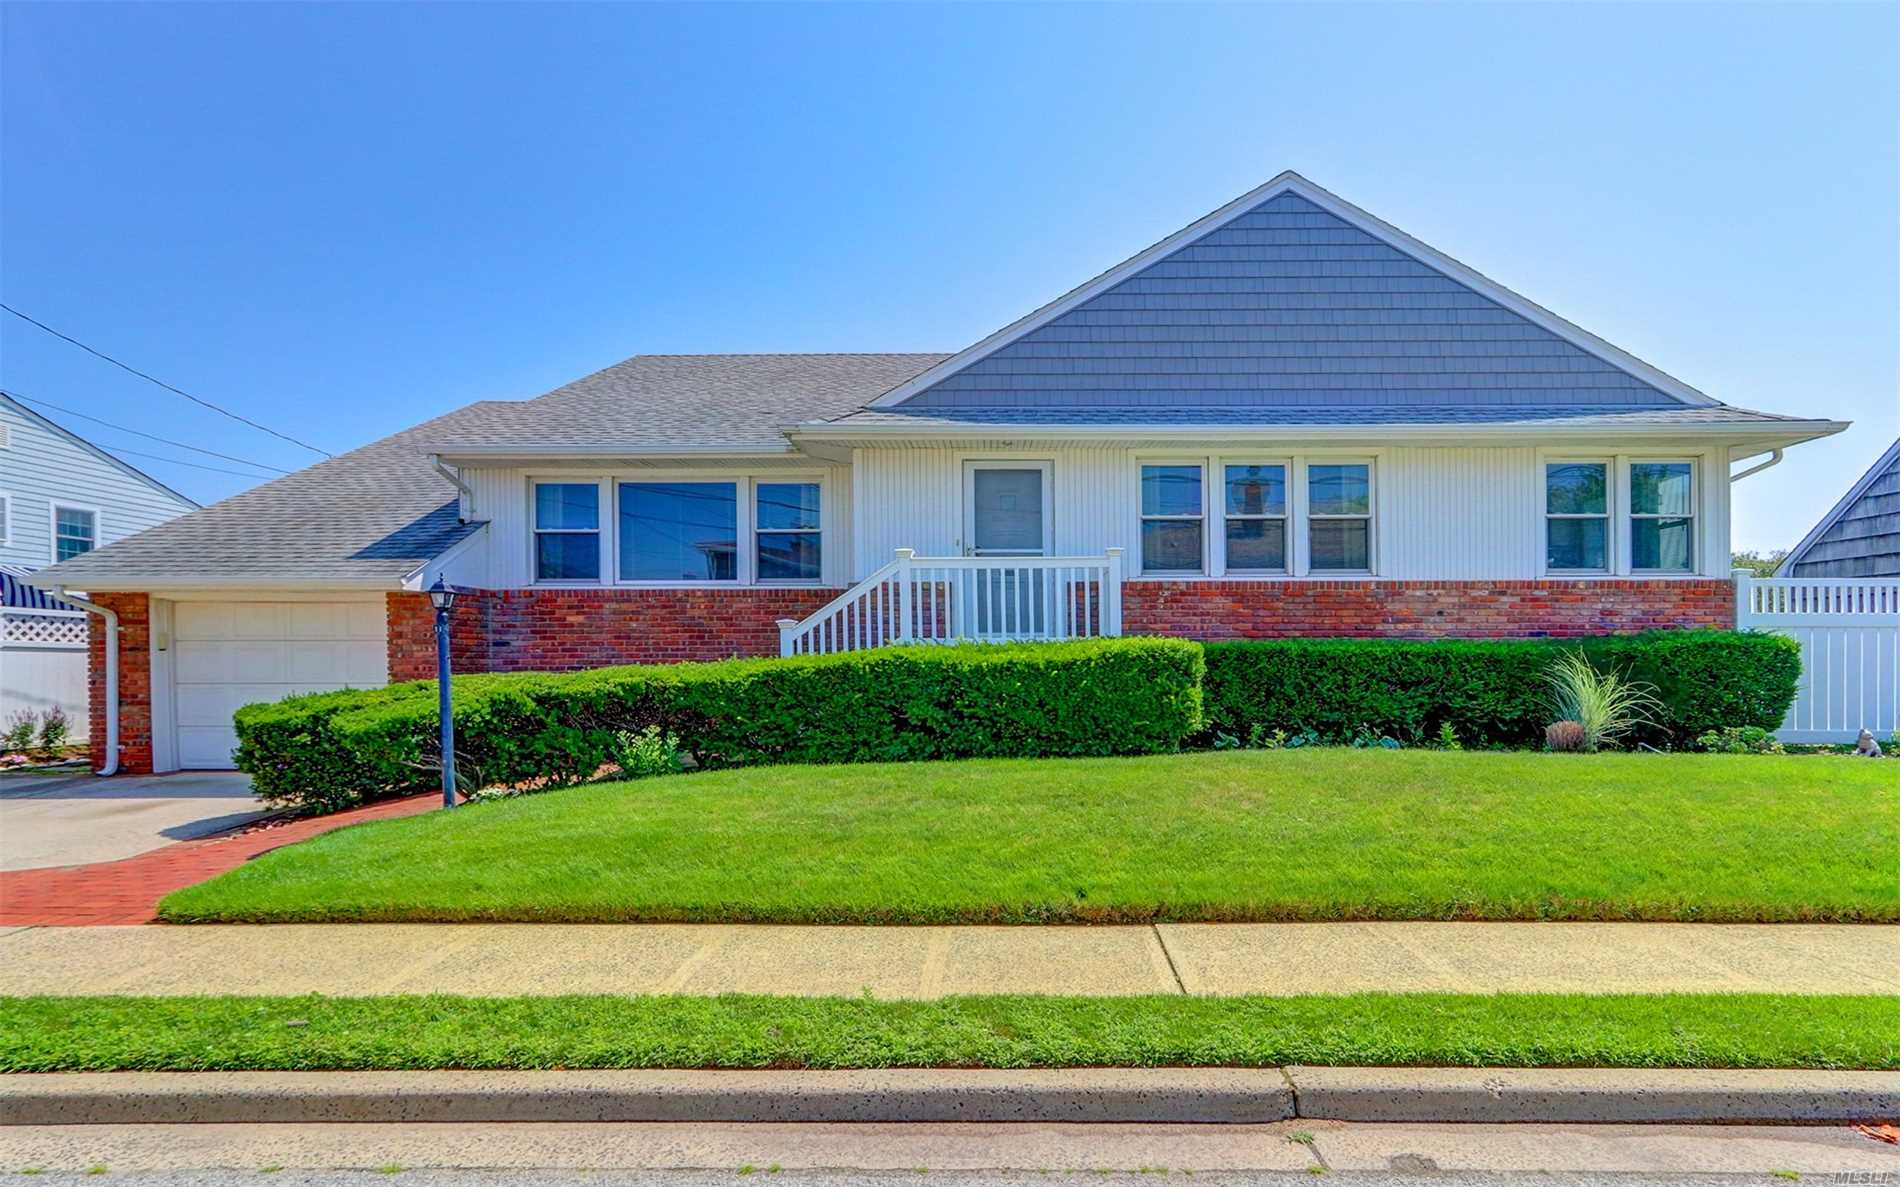 Photo of home for sale at 11 Nantwick St, Lido Beach NY